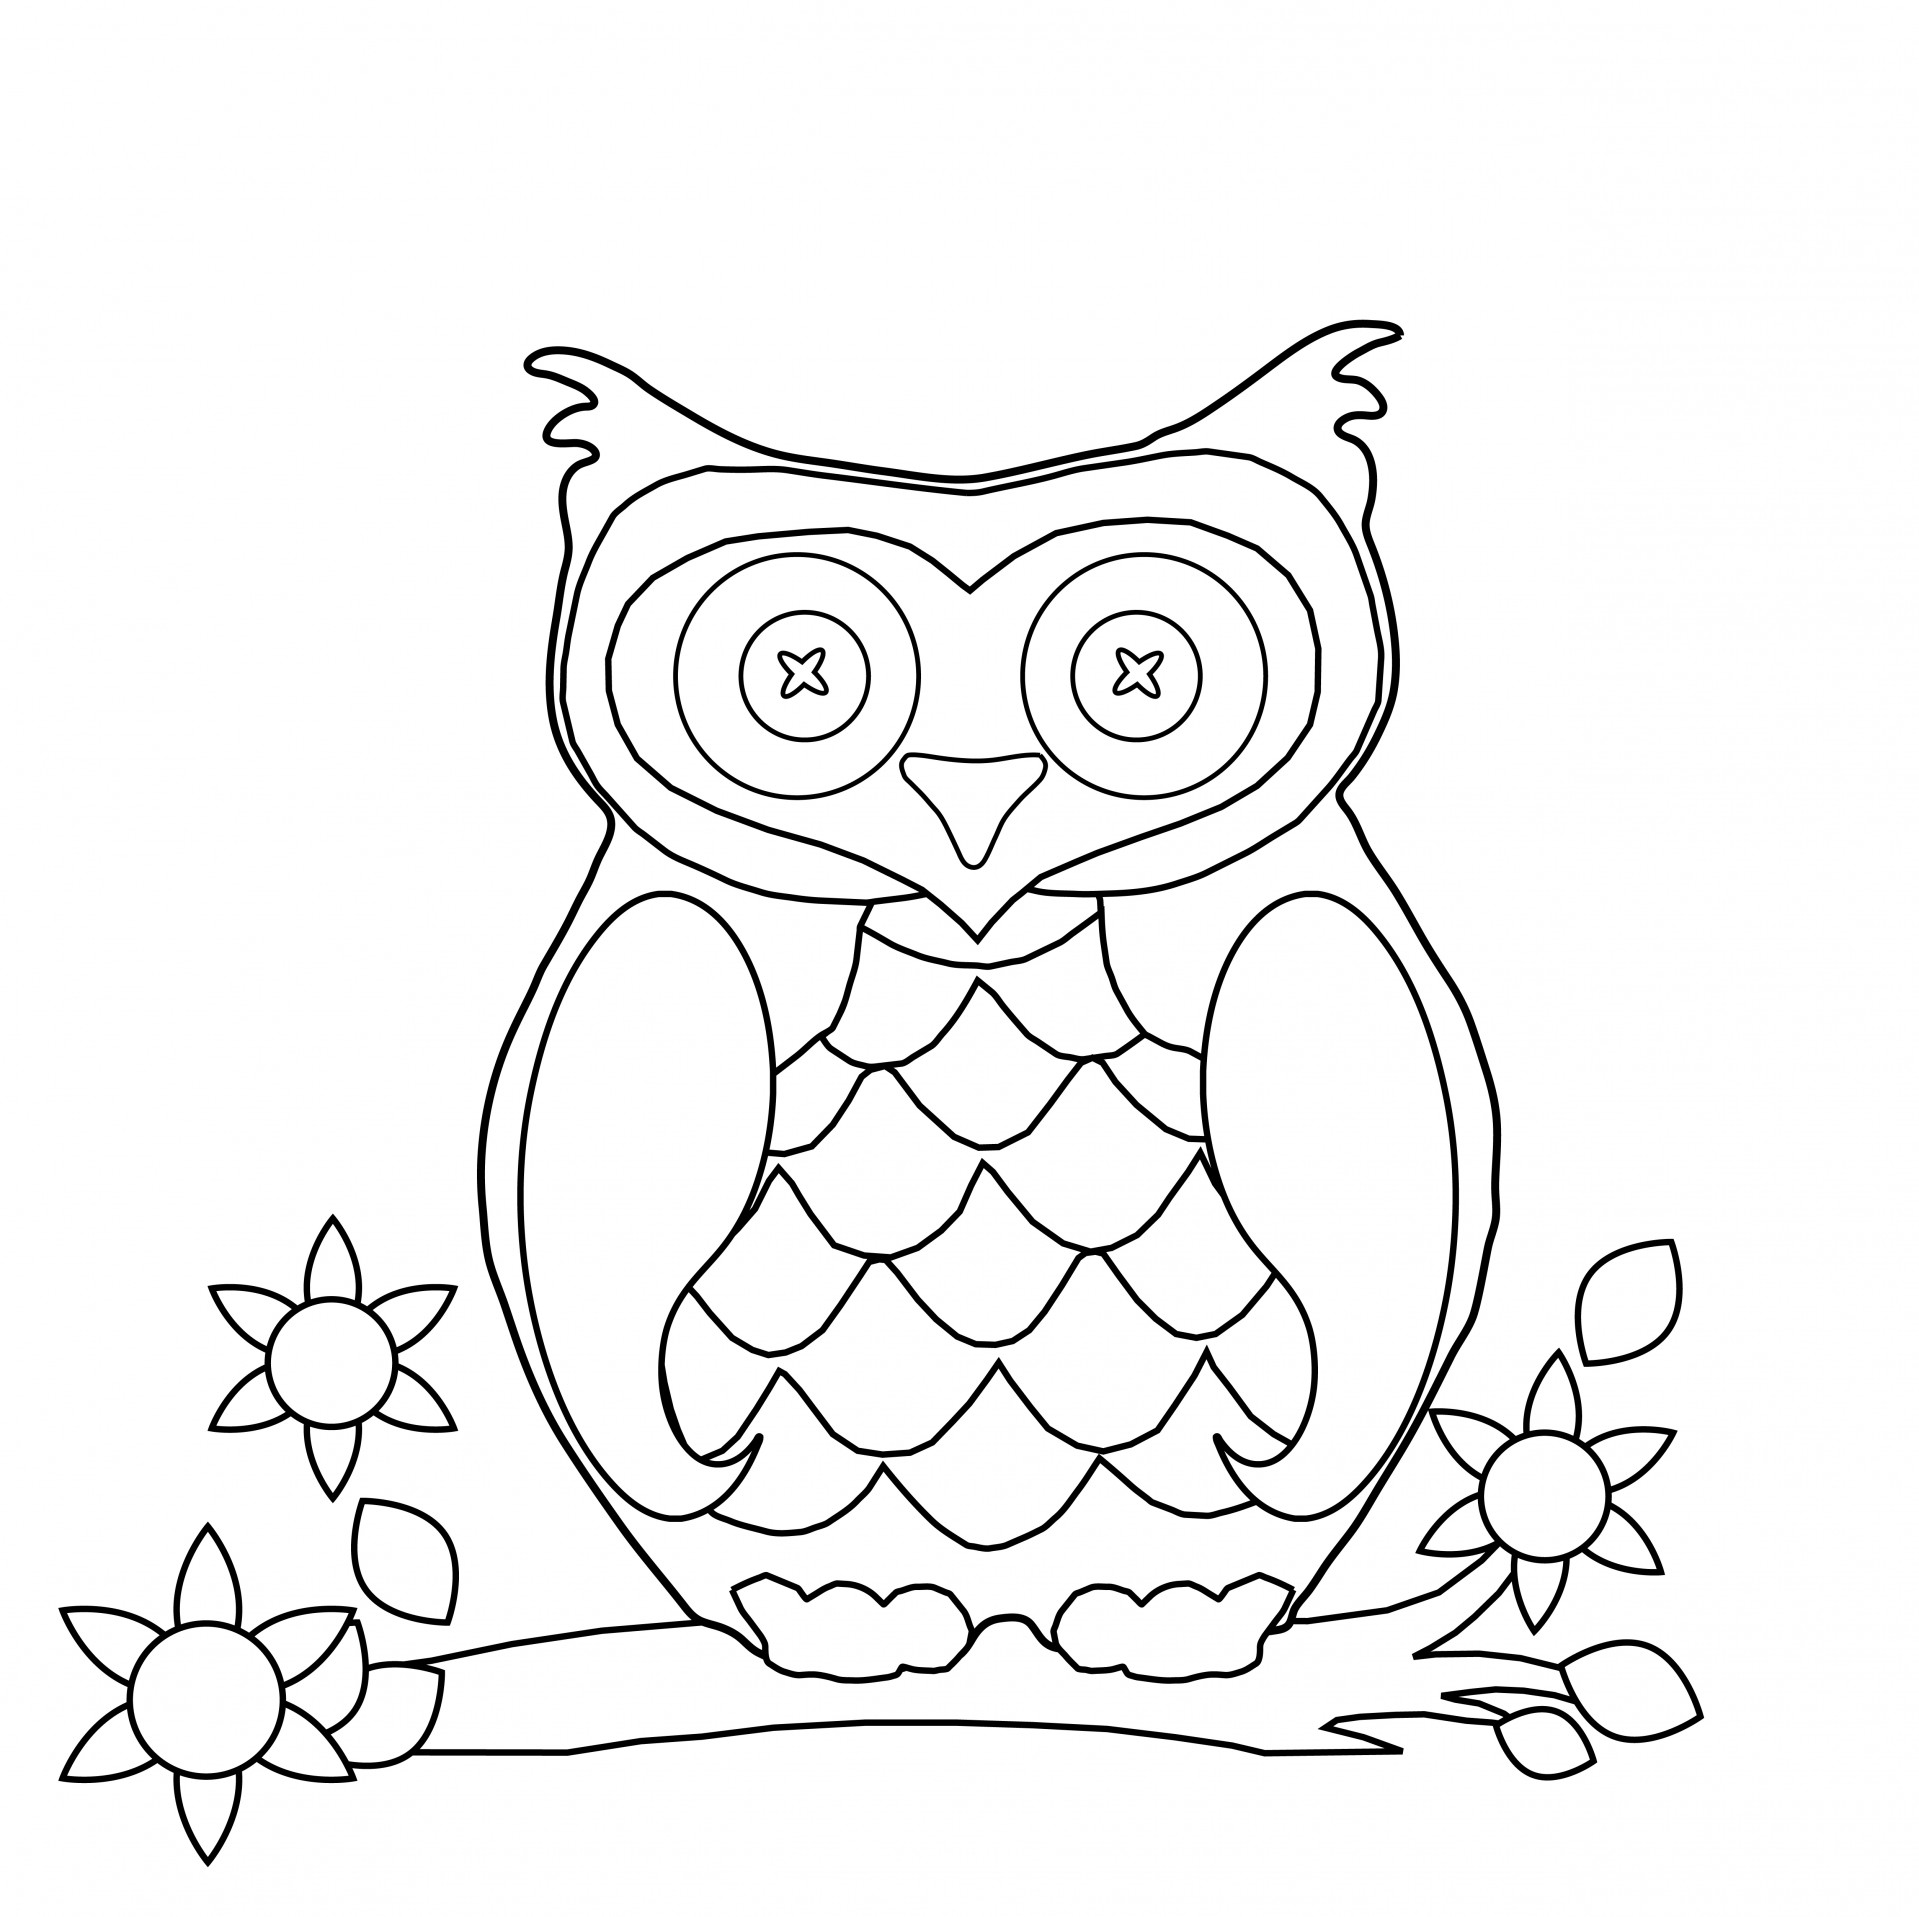 coloring pages to color coloring pages wildlife research conservation to pages coloring color